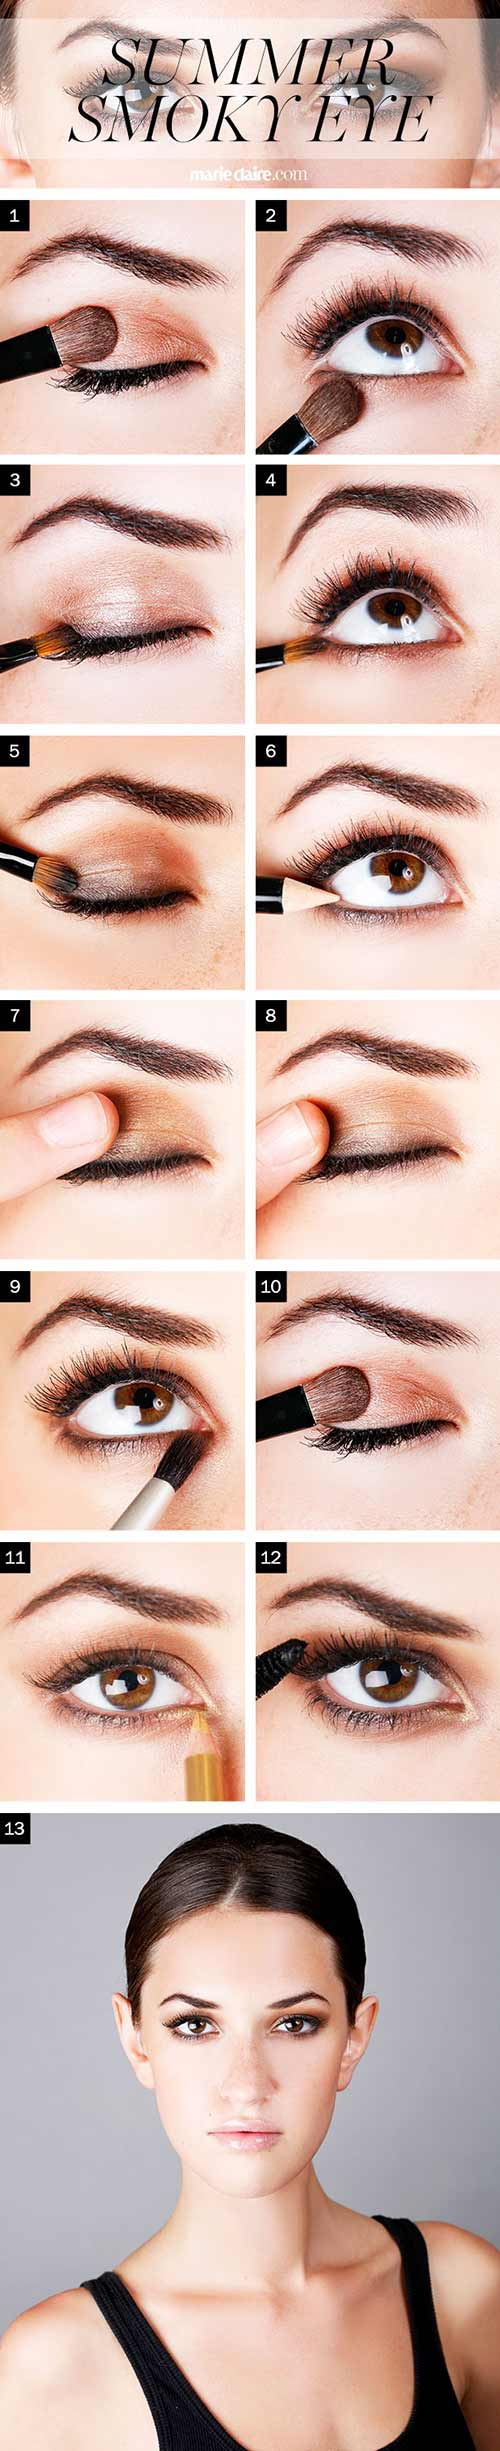 How to do smokey eye makeup top 10 tutorial pictures for 2018 bronze smokey eye makeup tutorial baditri Gallery